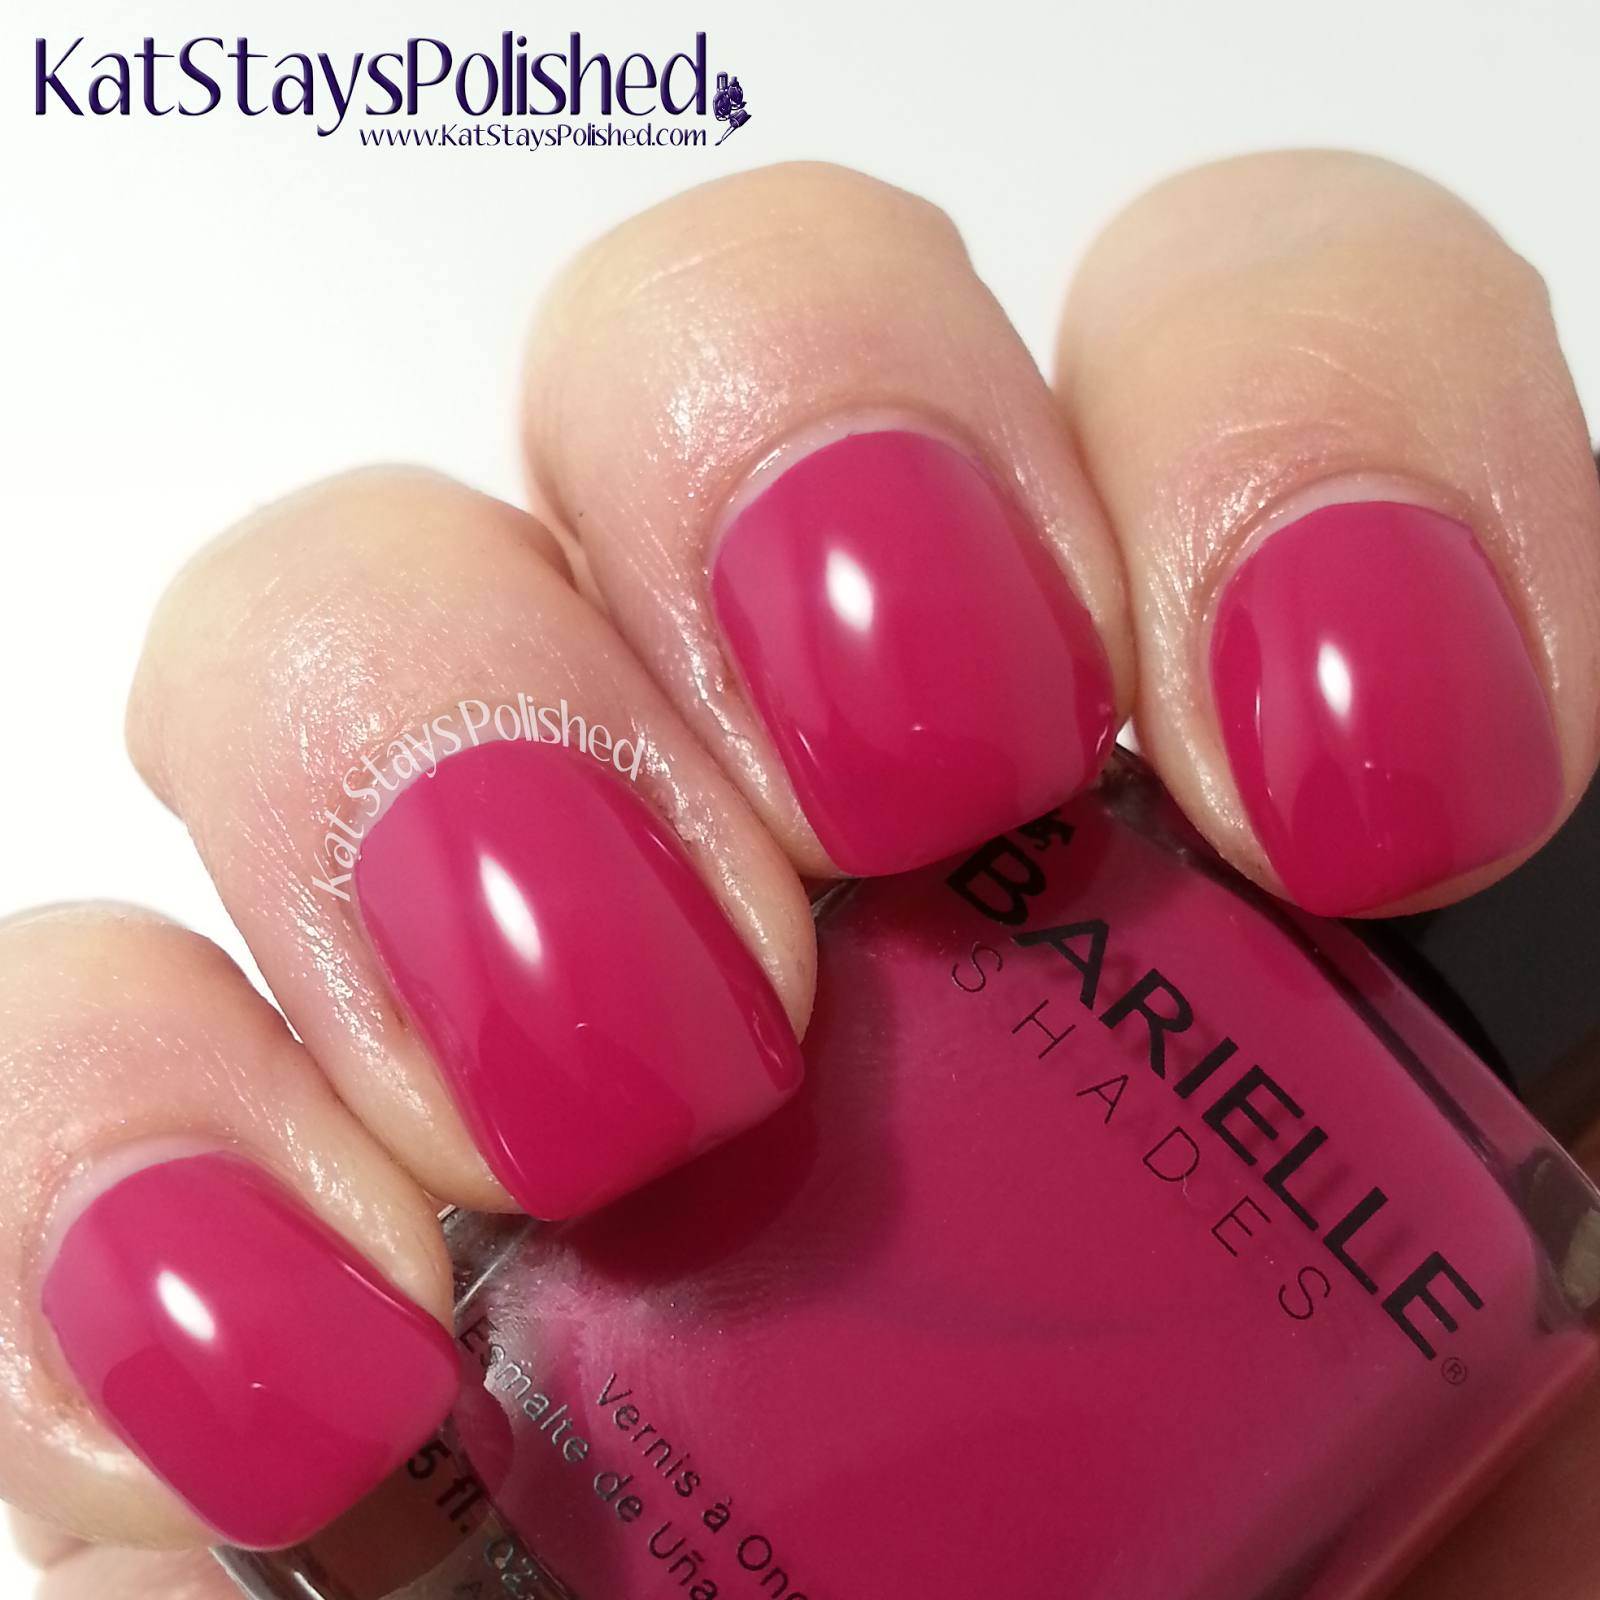 Barielle Me Couture - Berry Posh | Kat Stays Polished